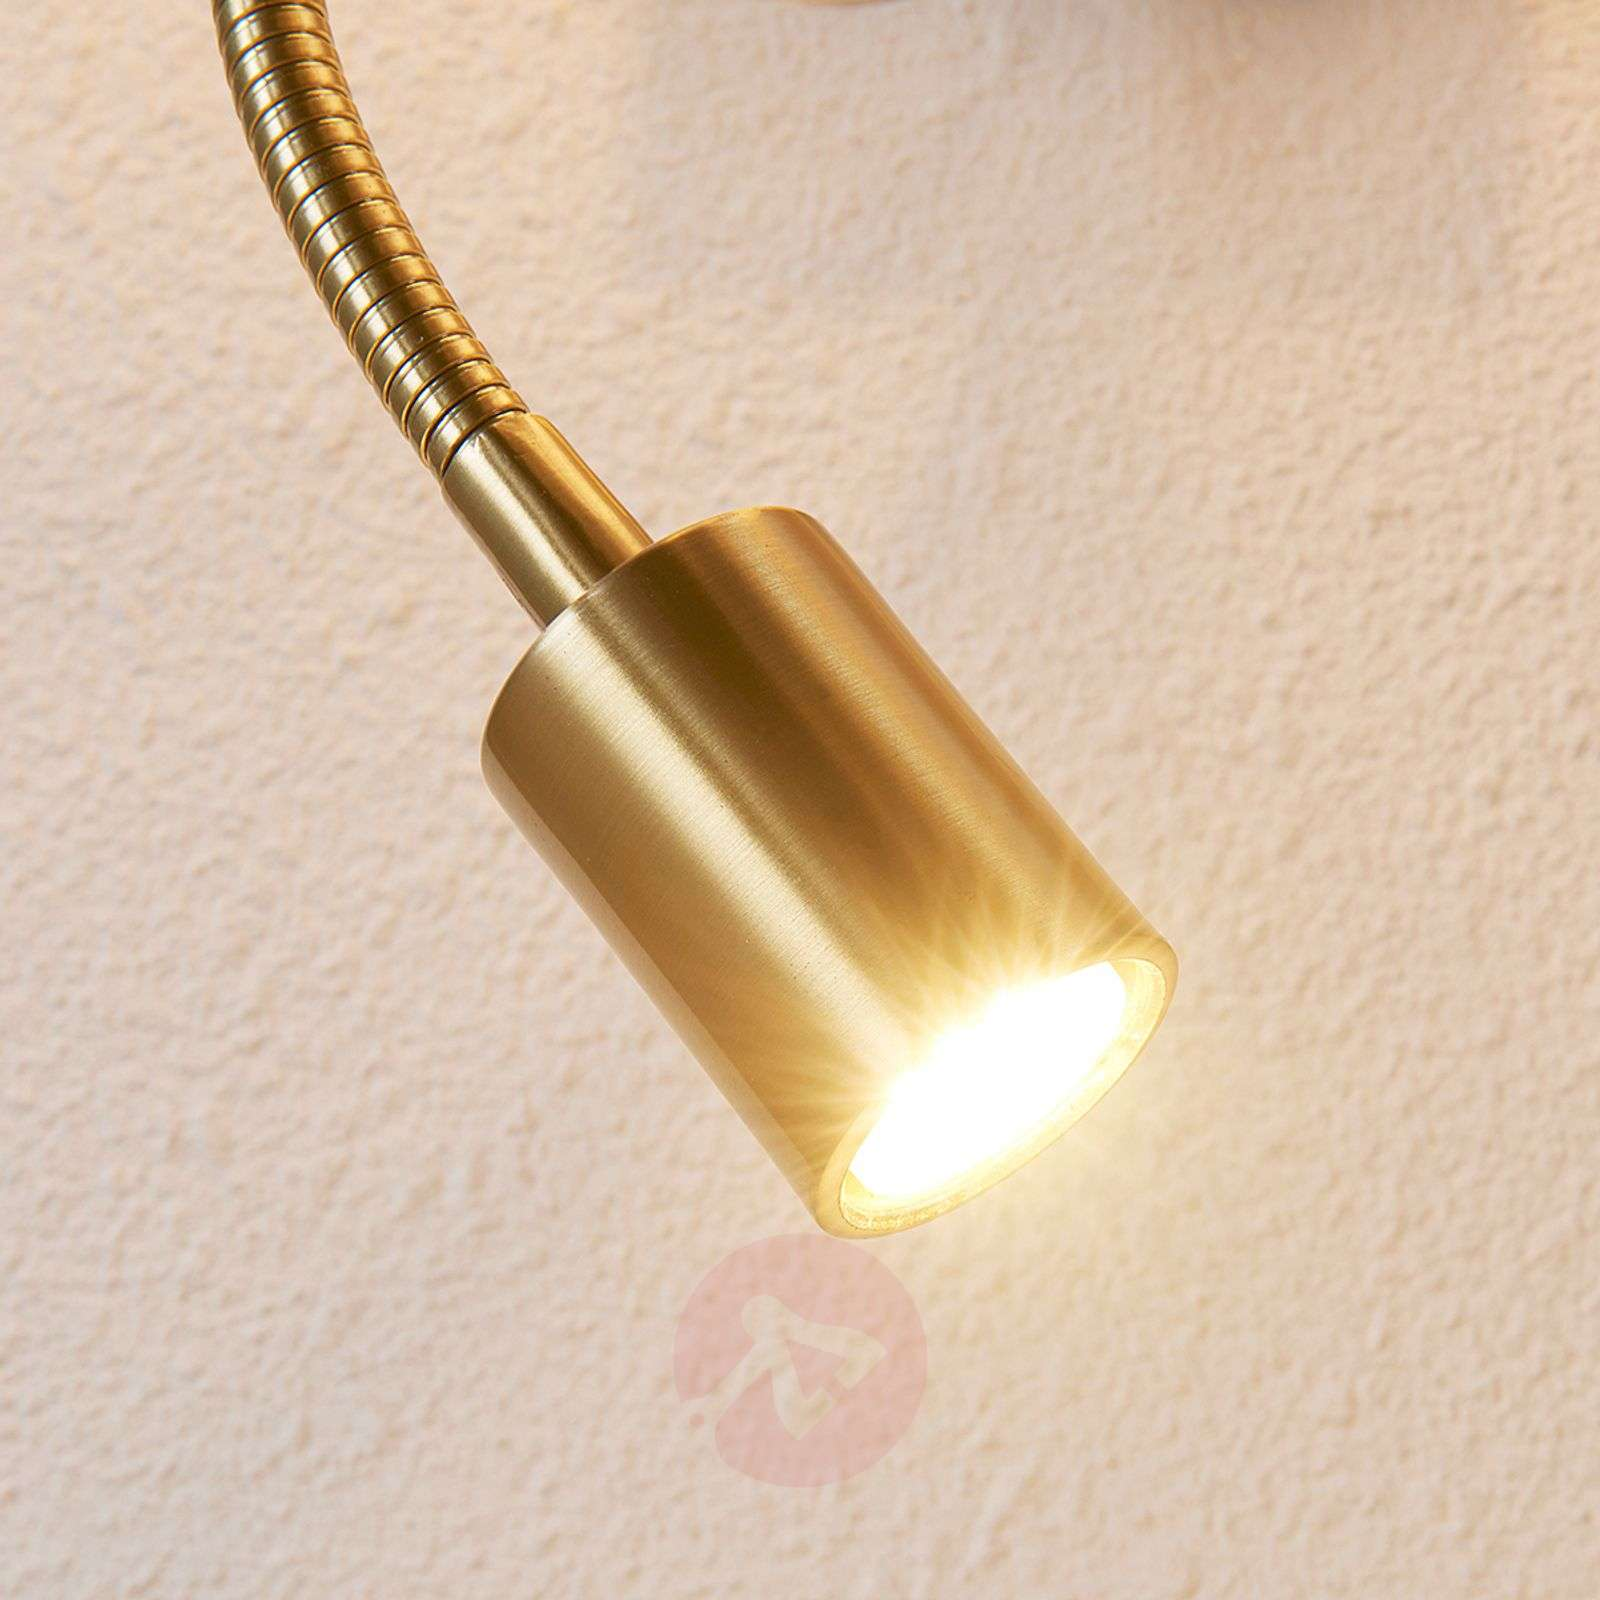 Brass-coloured wall lamp Florens LED reading light-9620923-03